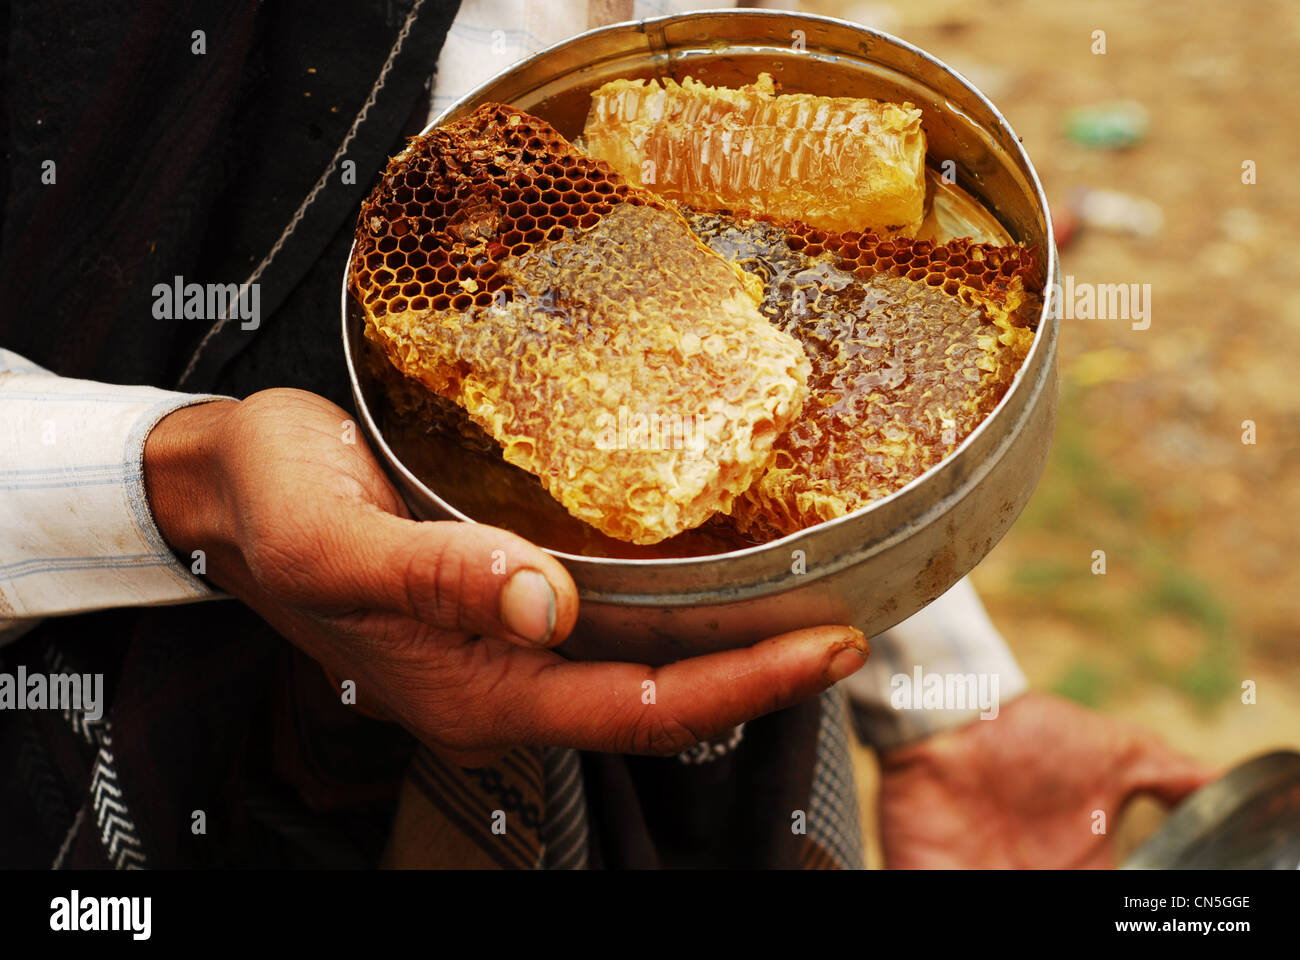 Yemen, Inland, man holding honeycomb inside a container - Stock Image